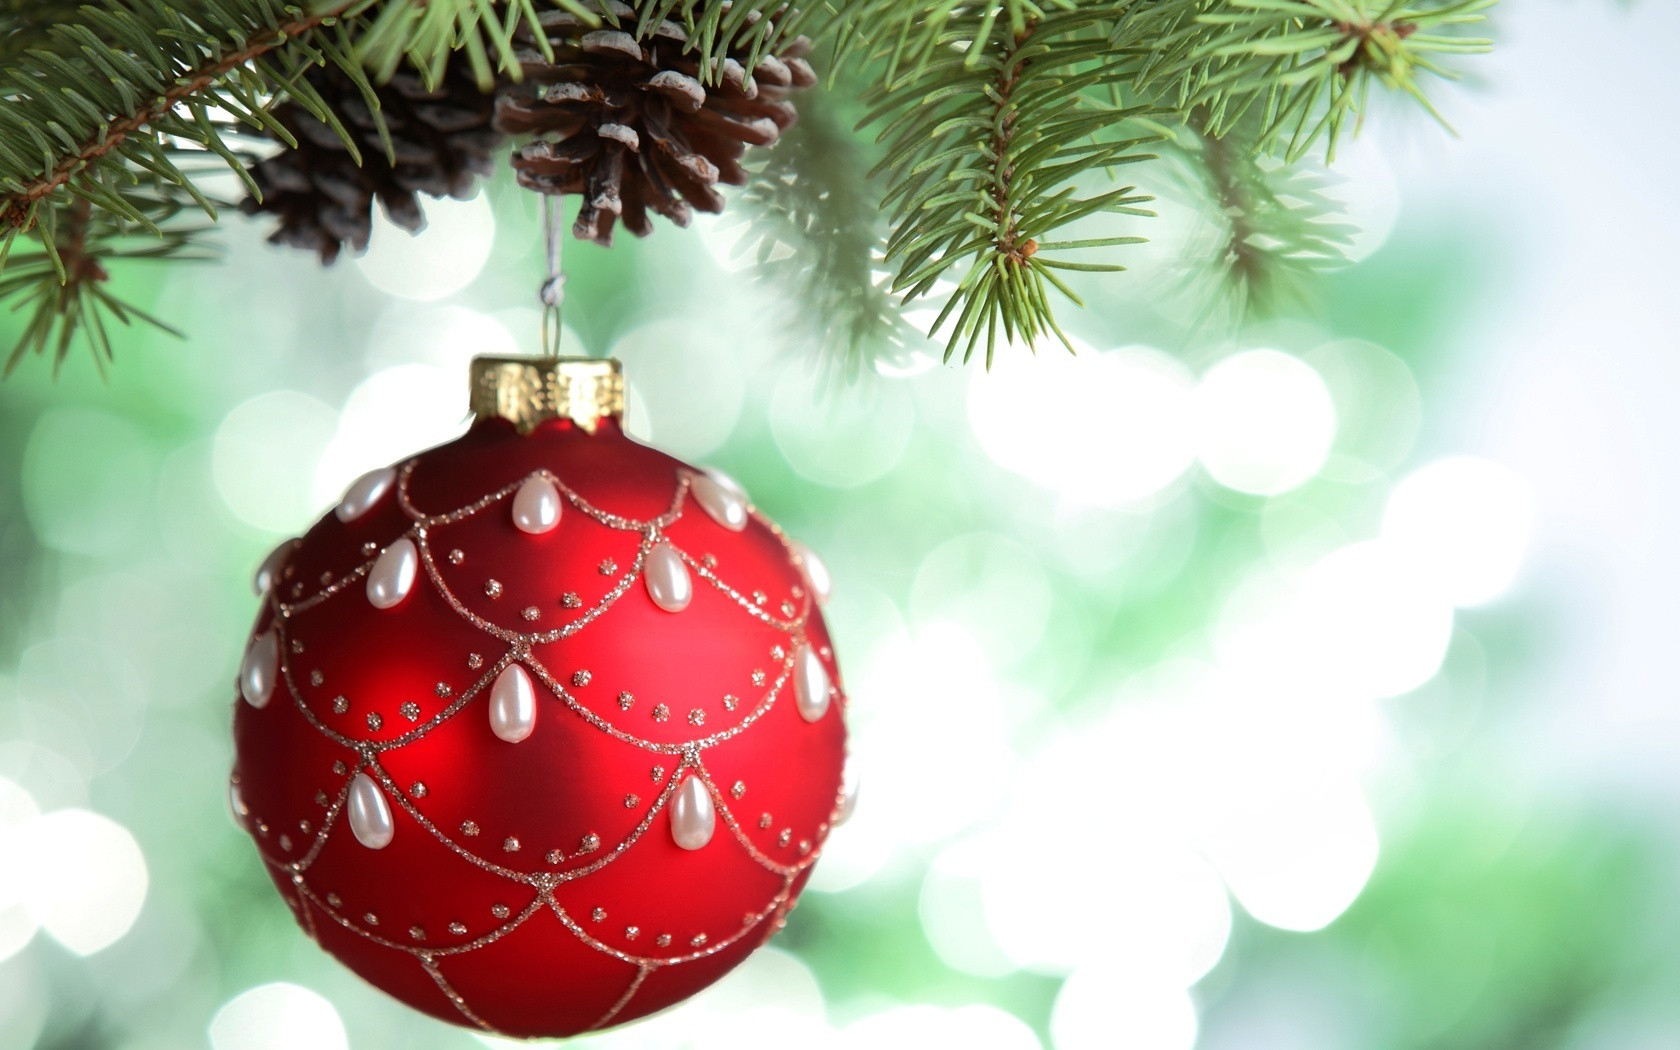 Inspirational January 2015 Christmas Tree Balls Of Wonderful 50 Pictures Christmas Tree Balls